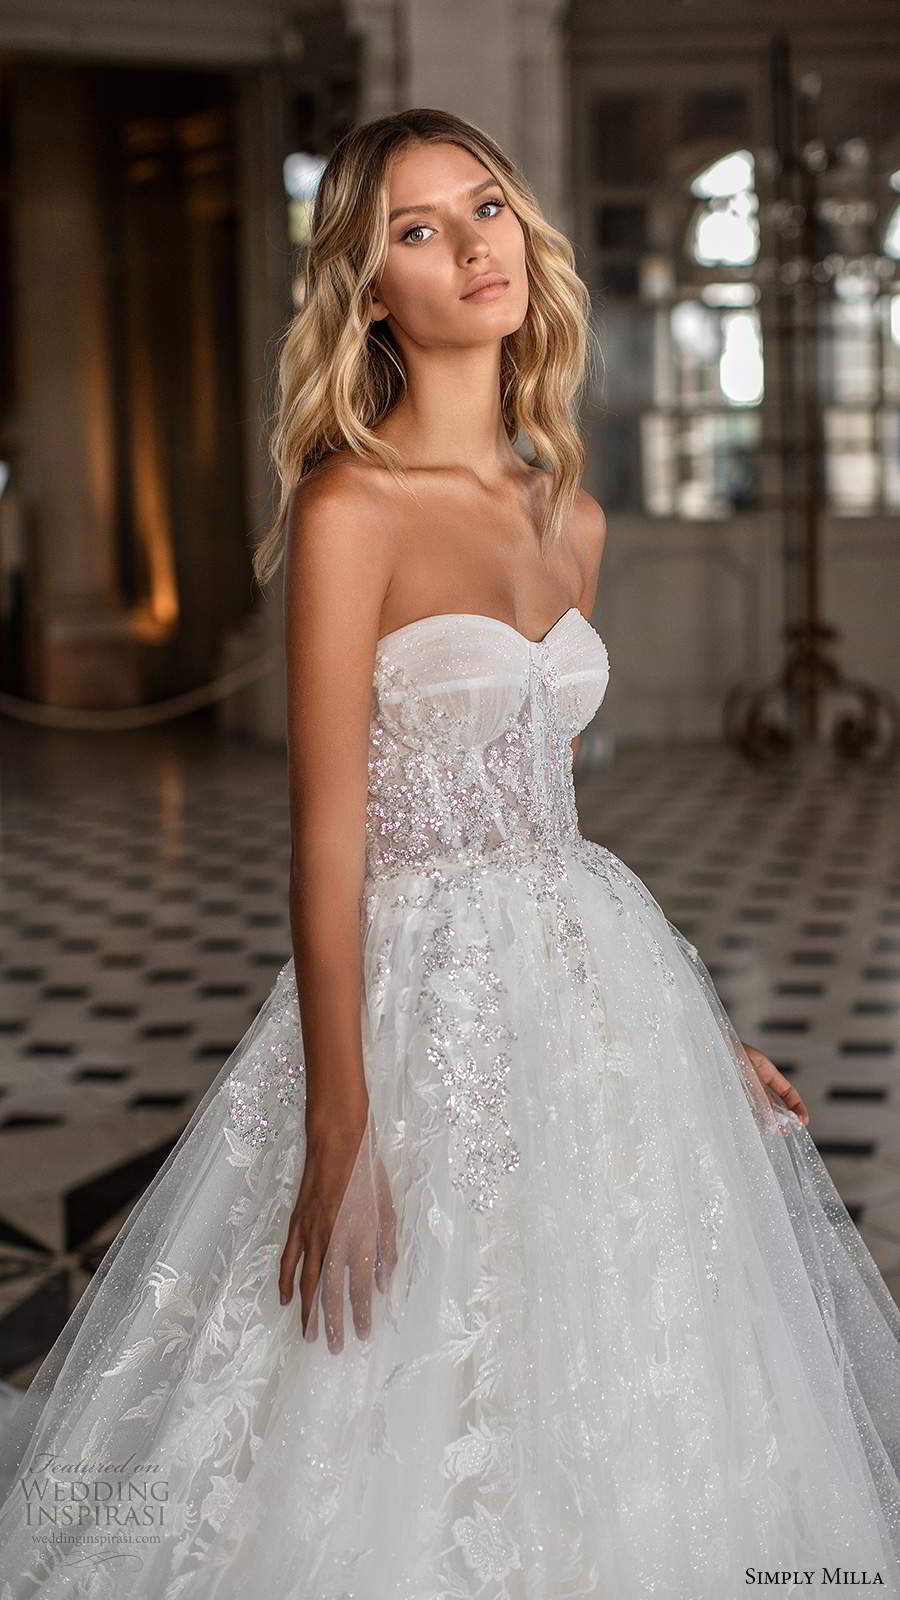 simply milla nova 2020 bridal strapless sweetheart neckline fully embellished aline ball gown wedding dress cathedral train (1) zv